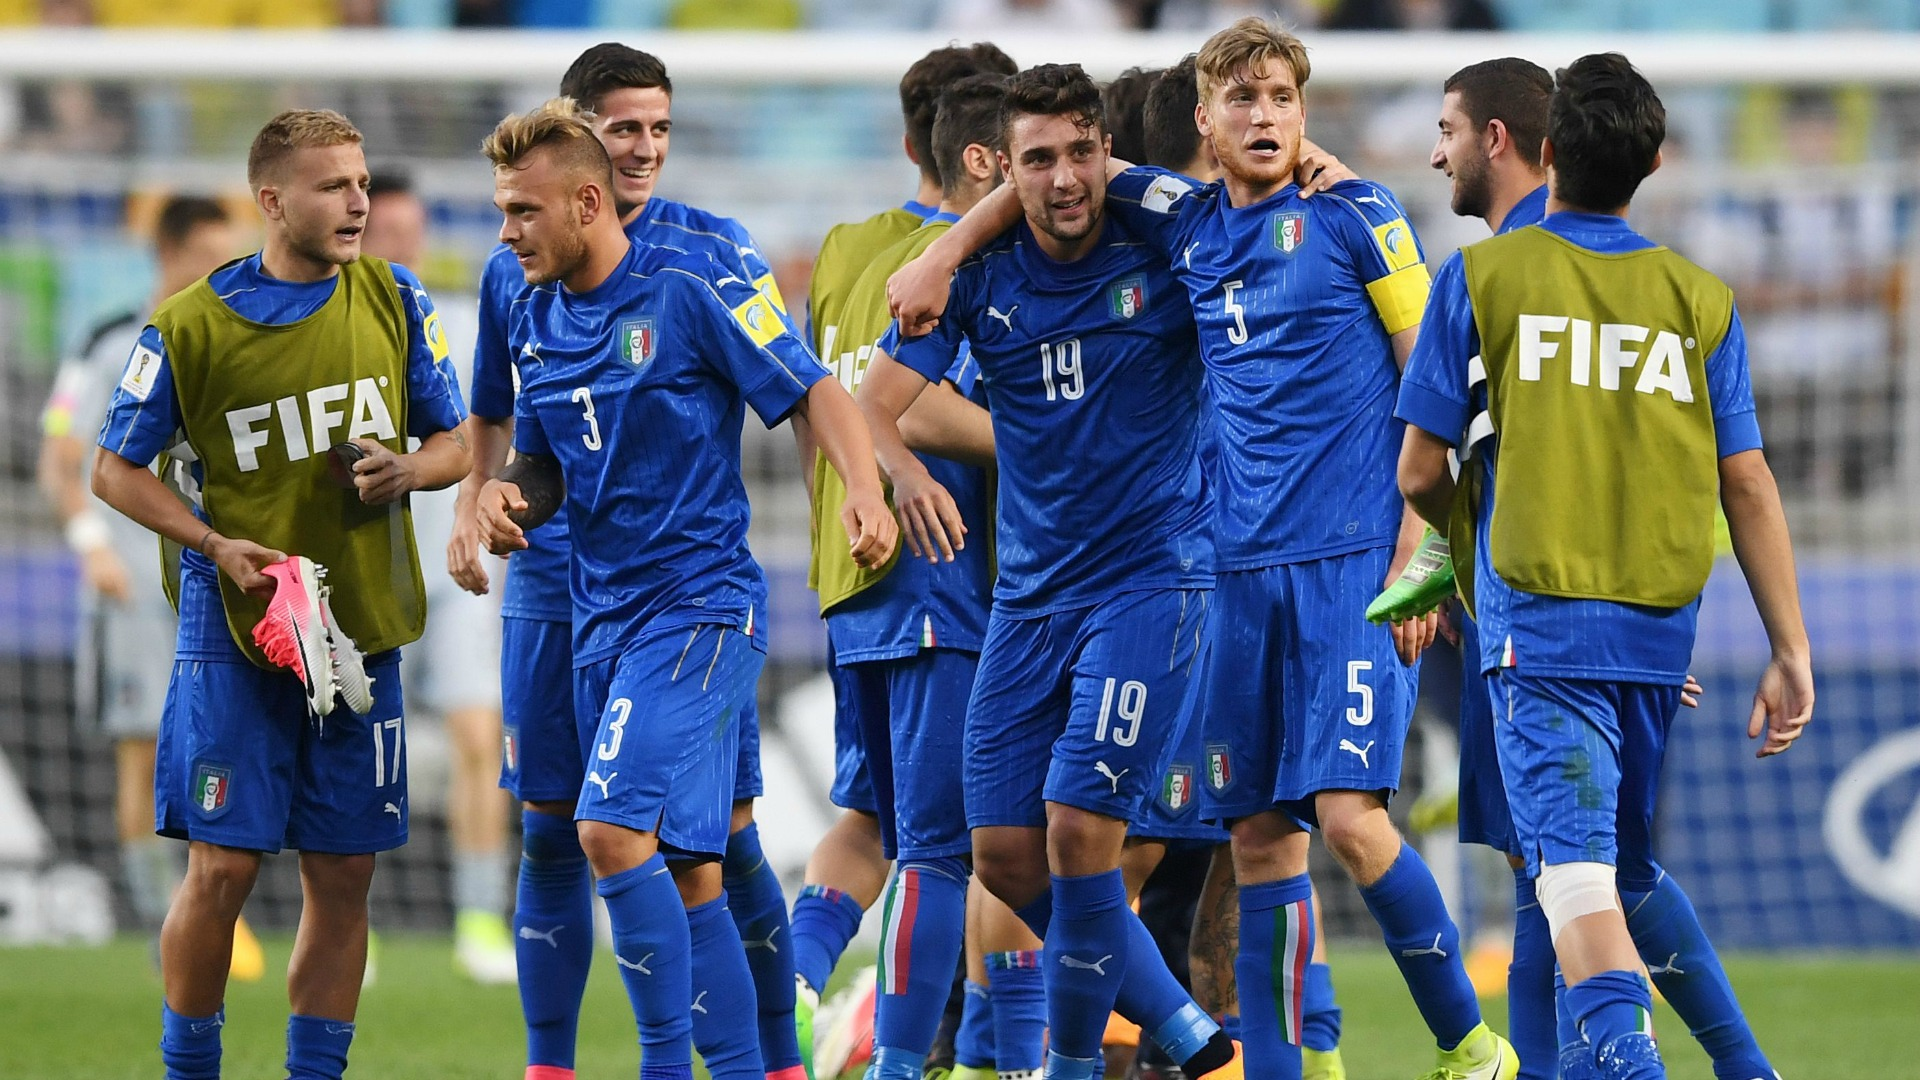 Mondiale under 20, Italia-Inghilterra 1-3: gli highlights